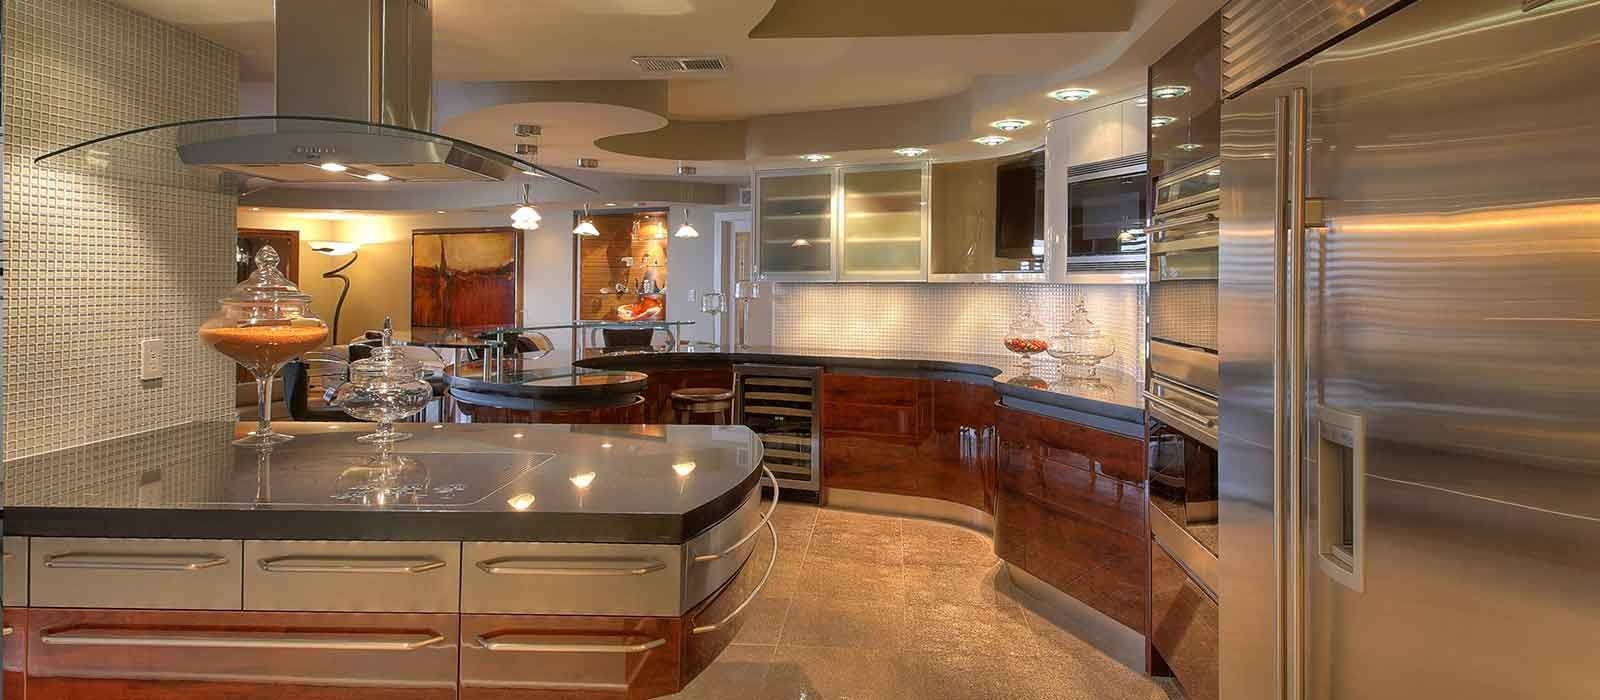 capitol-design-award-winning-kitchen-bathroom-design-remodel-renovation-austin-tx-3